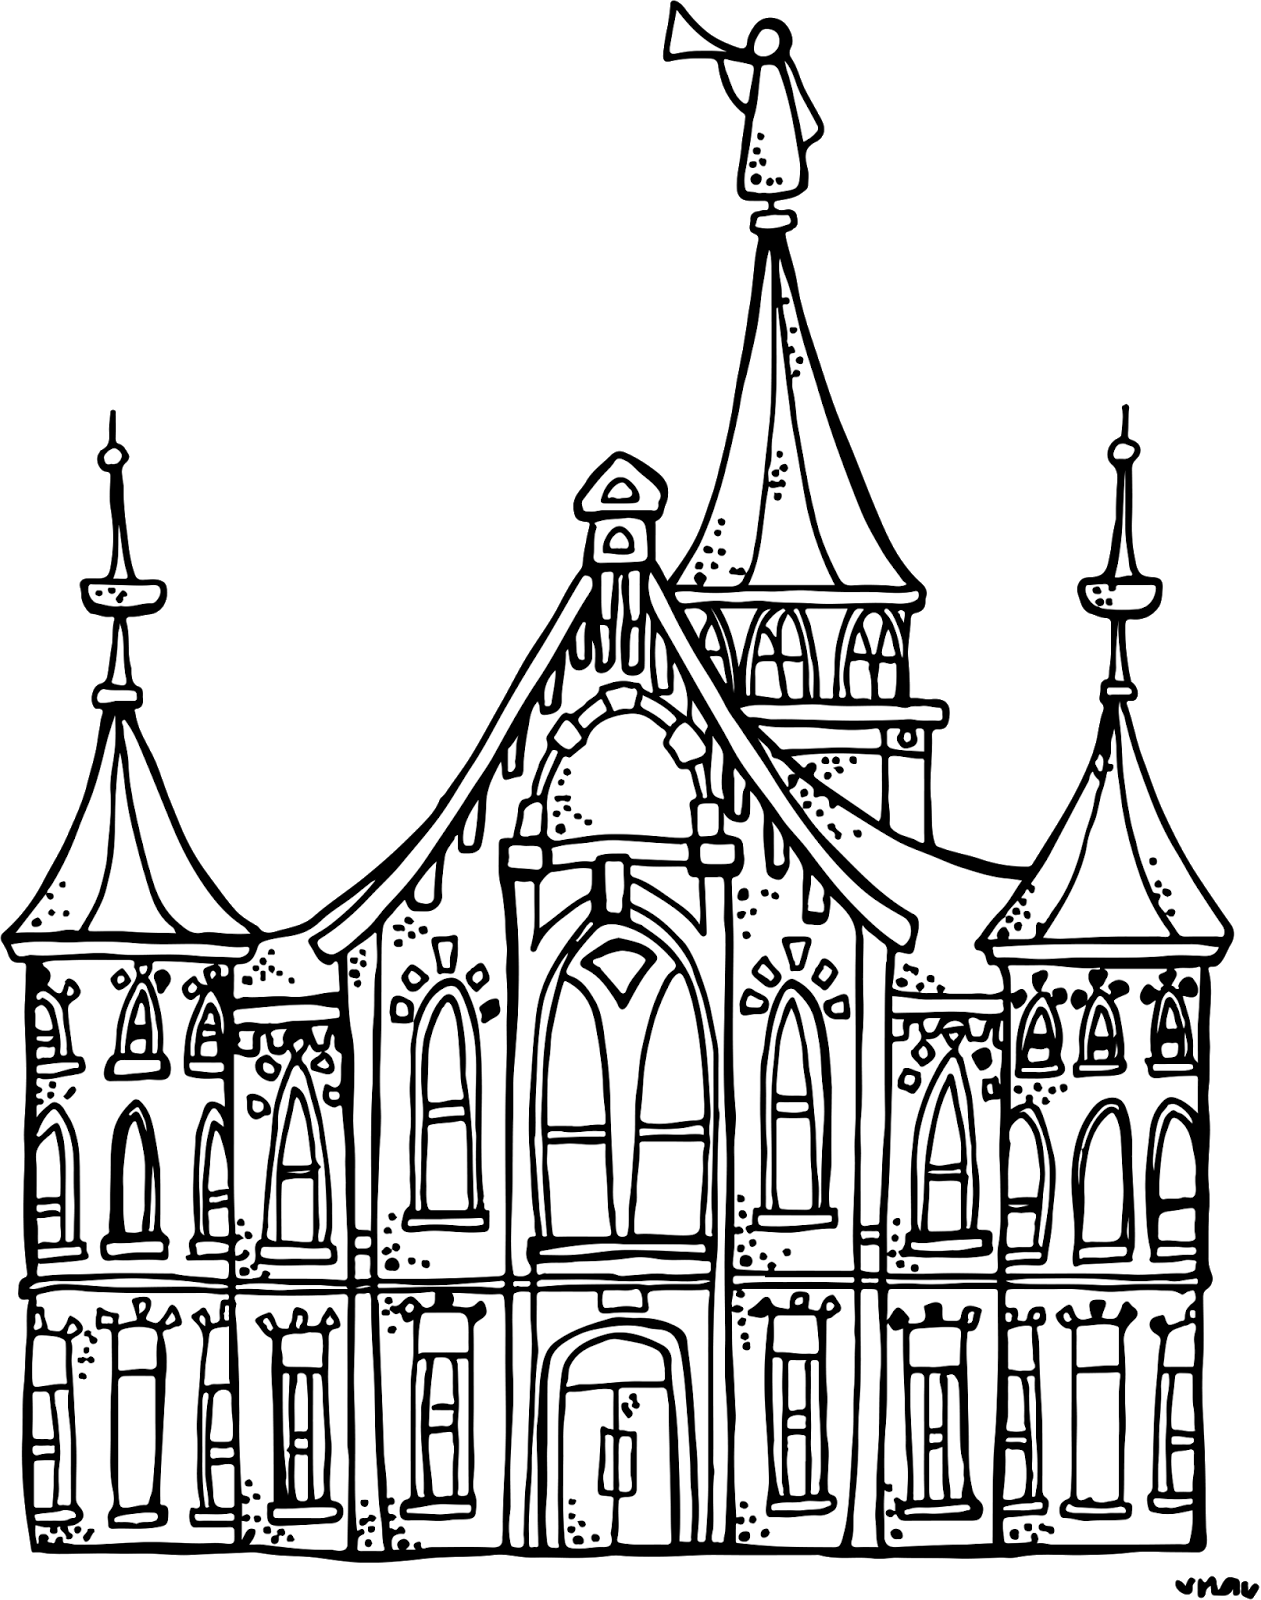 printable pictures of buildings city coloring pages best coloring pages for kids printable of pictures buildings